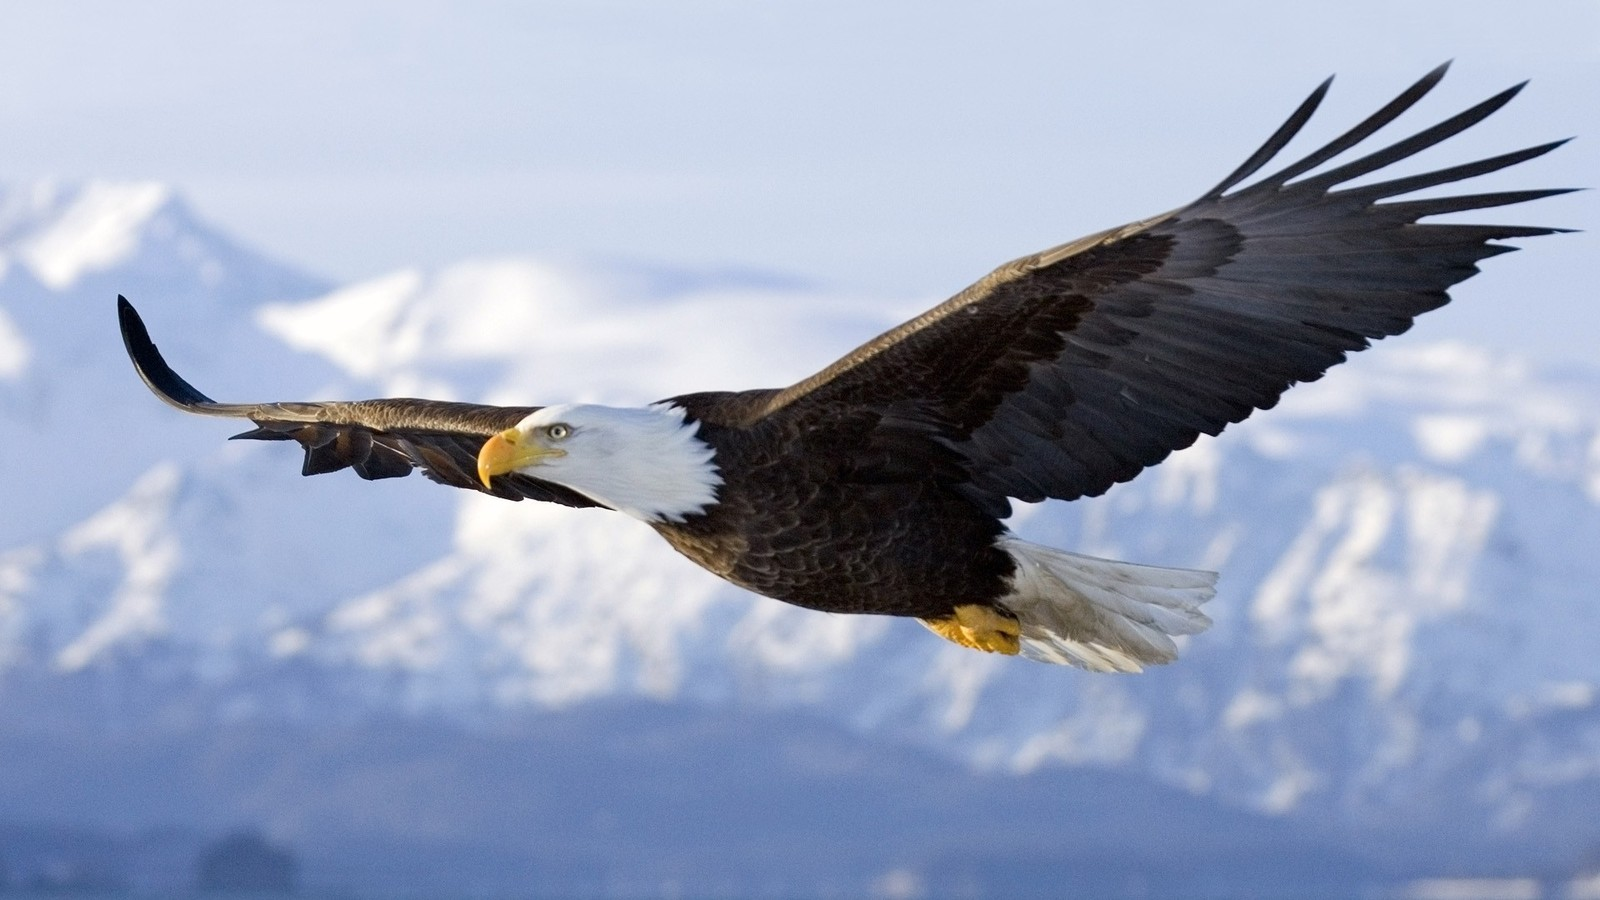 http://1.bp.blogspot.com/-KmYLqzWKe4w/UKAkgmiq37I/AAAAAAAAGDM/-FsIxJwqGNM/s1600/Floating-Eagle-Huge-Wings-HD-Wallpaper.jpg